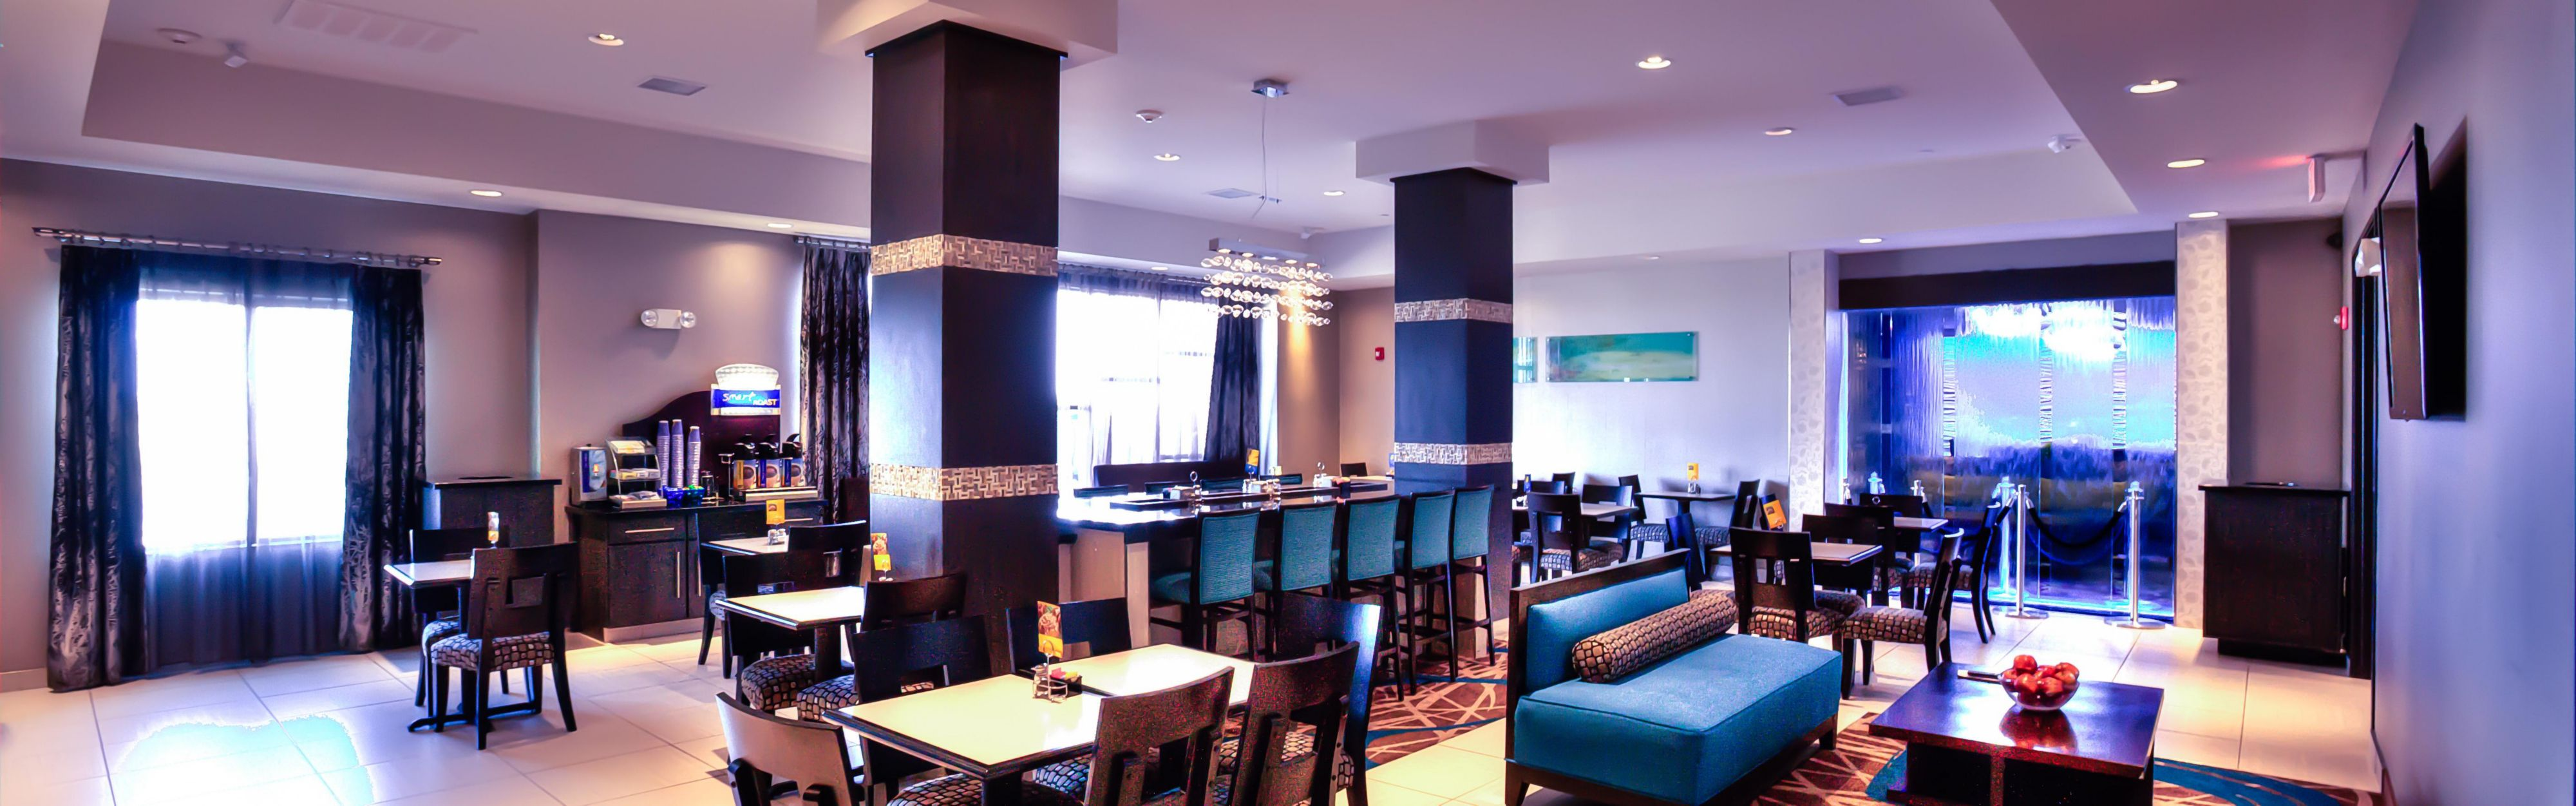 Holiday Inn Express & Suites Amarillo West image 3